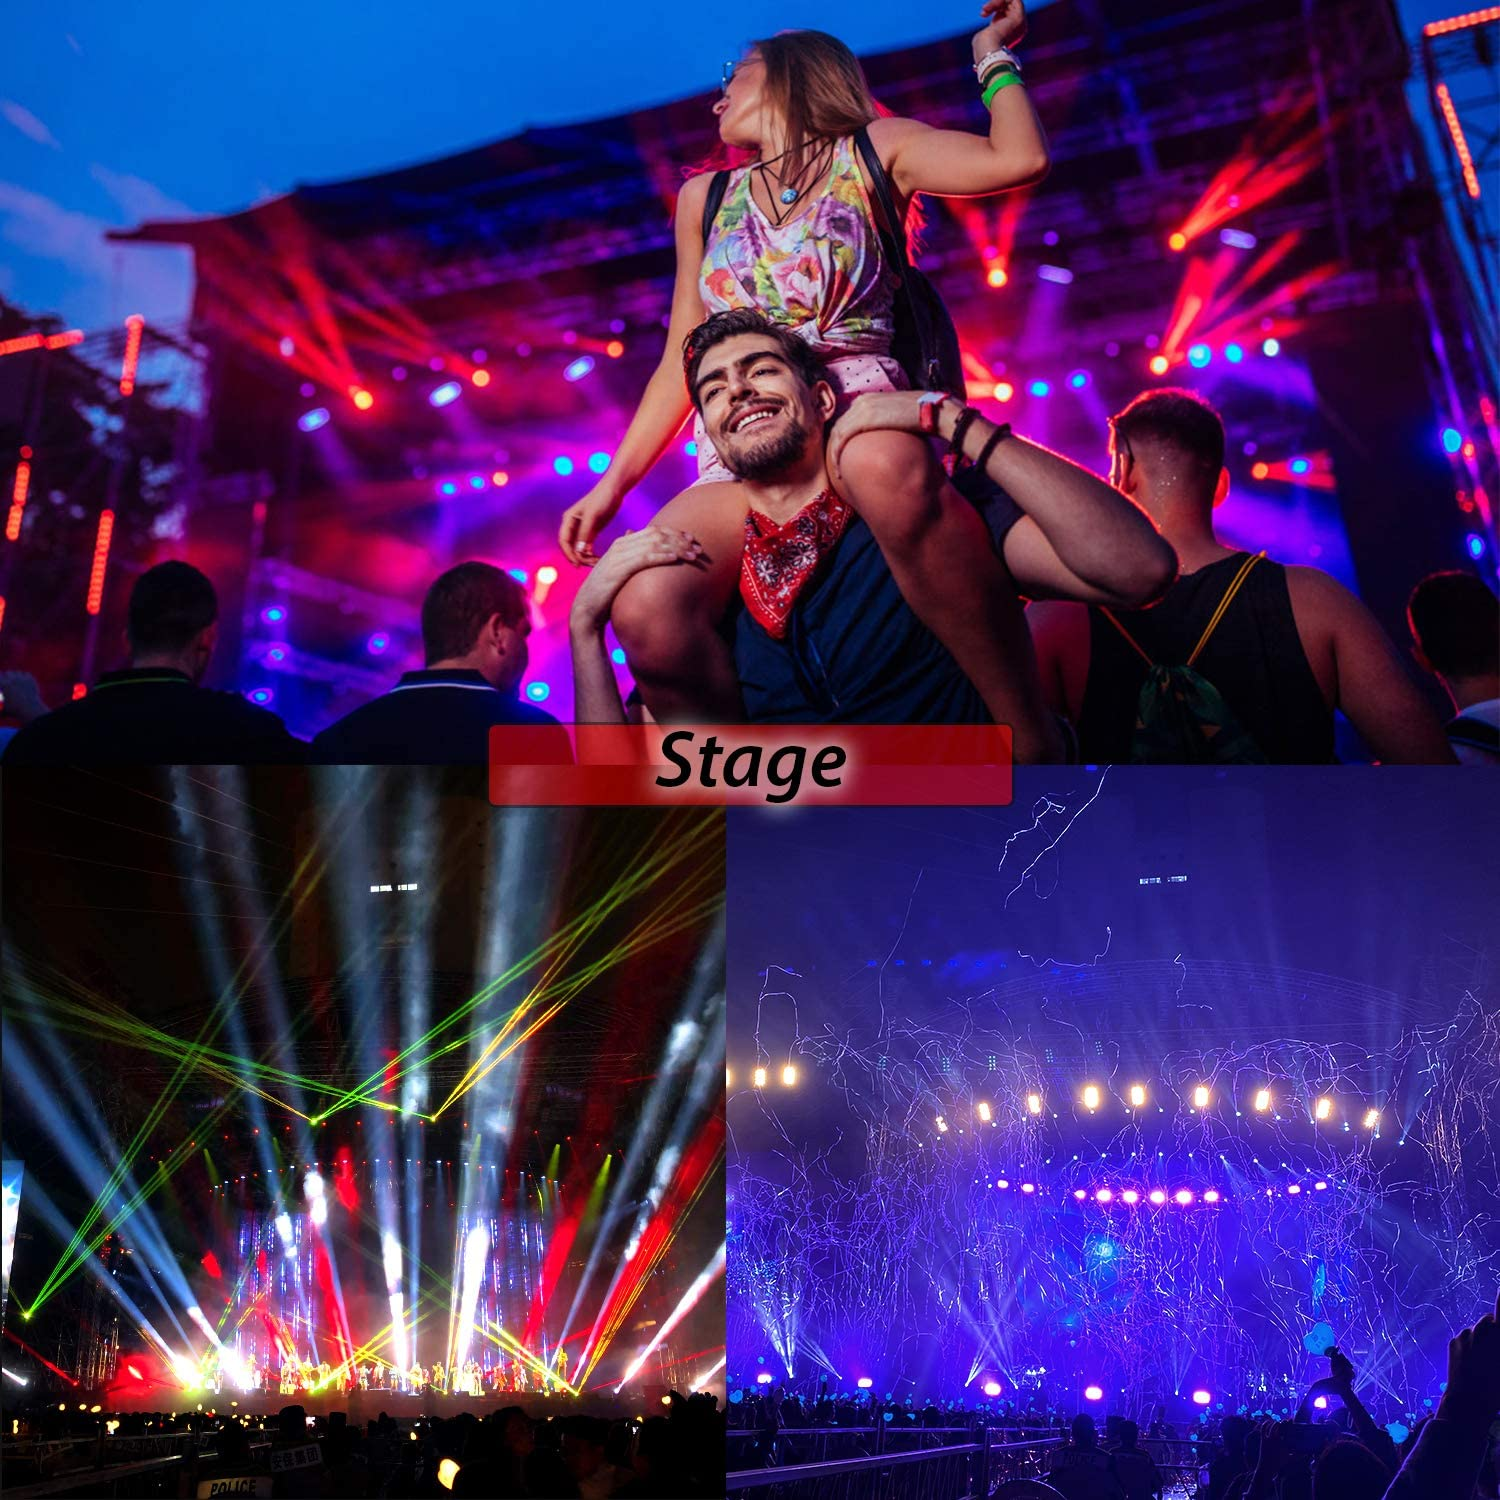 BSYUN Stage Lights Sound Activated RGBW LED DJ Lights Mixed Beam Lights Effects with Remote Control DMX 512 Controllable Party Lights for Wedding Birthday Dance Party